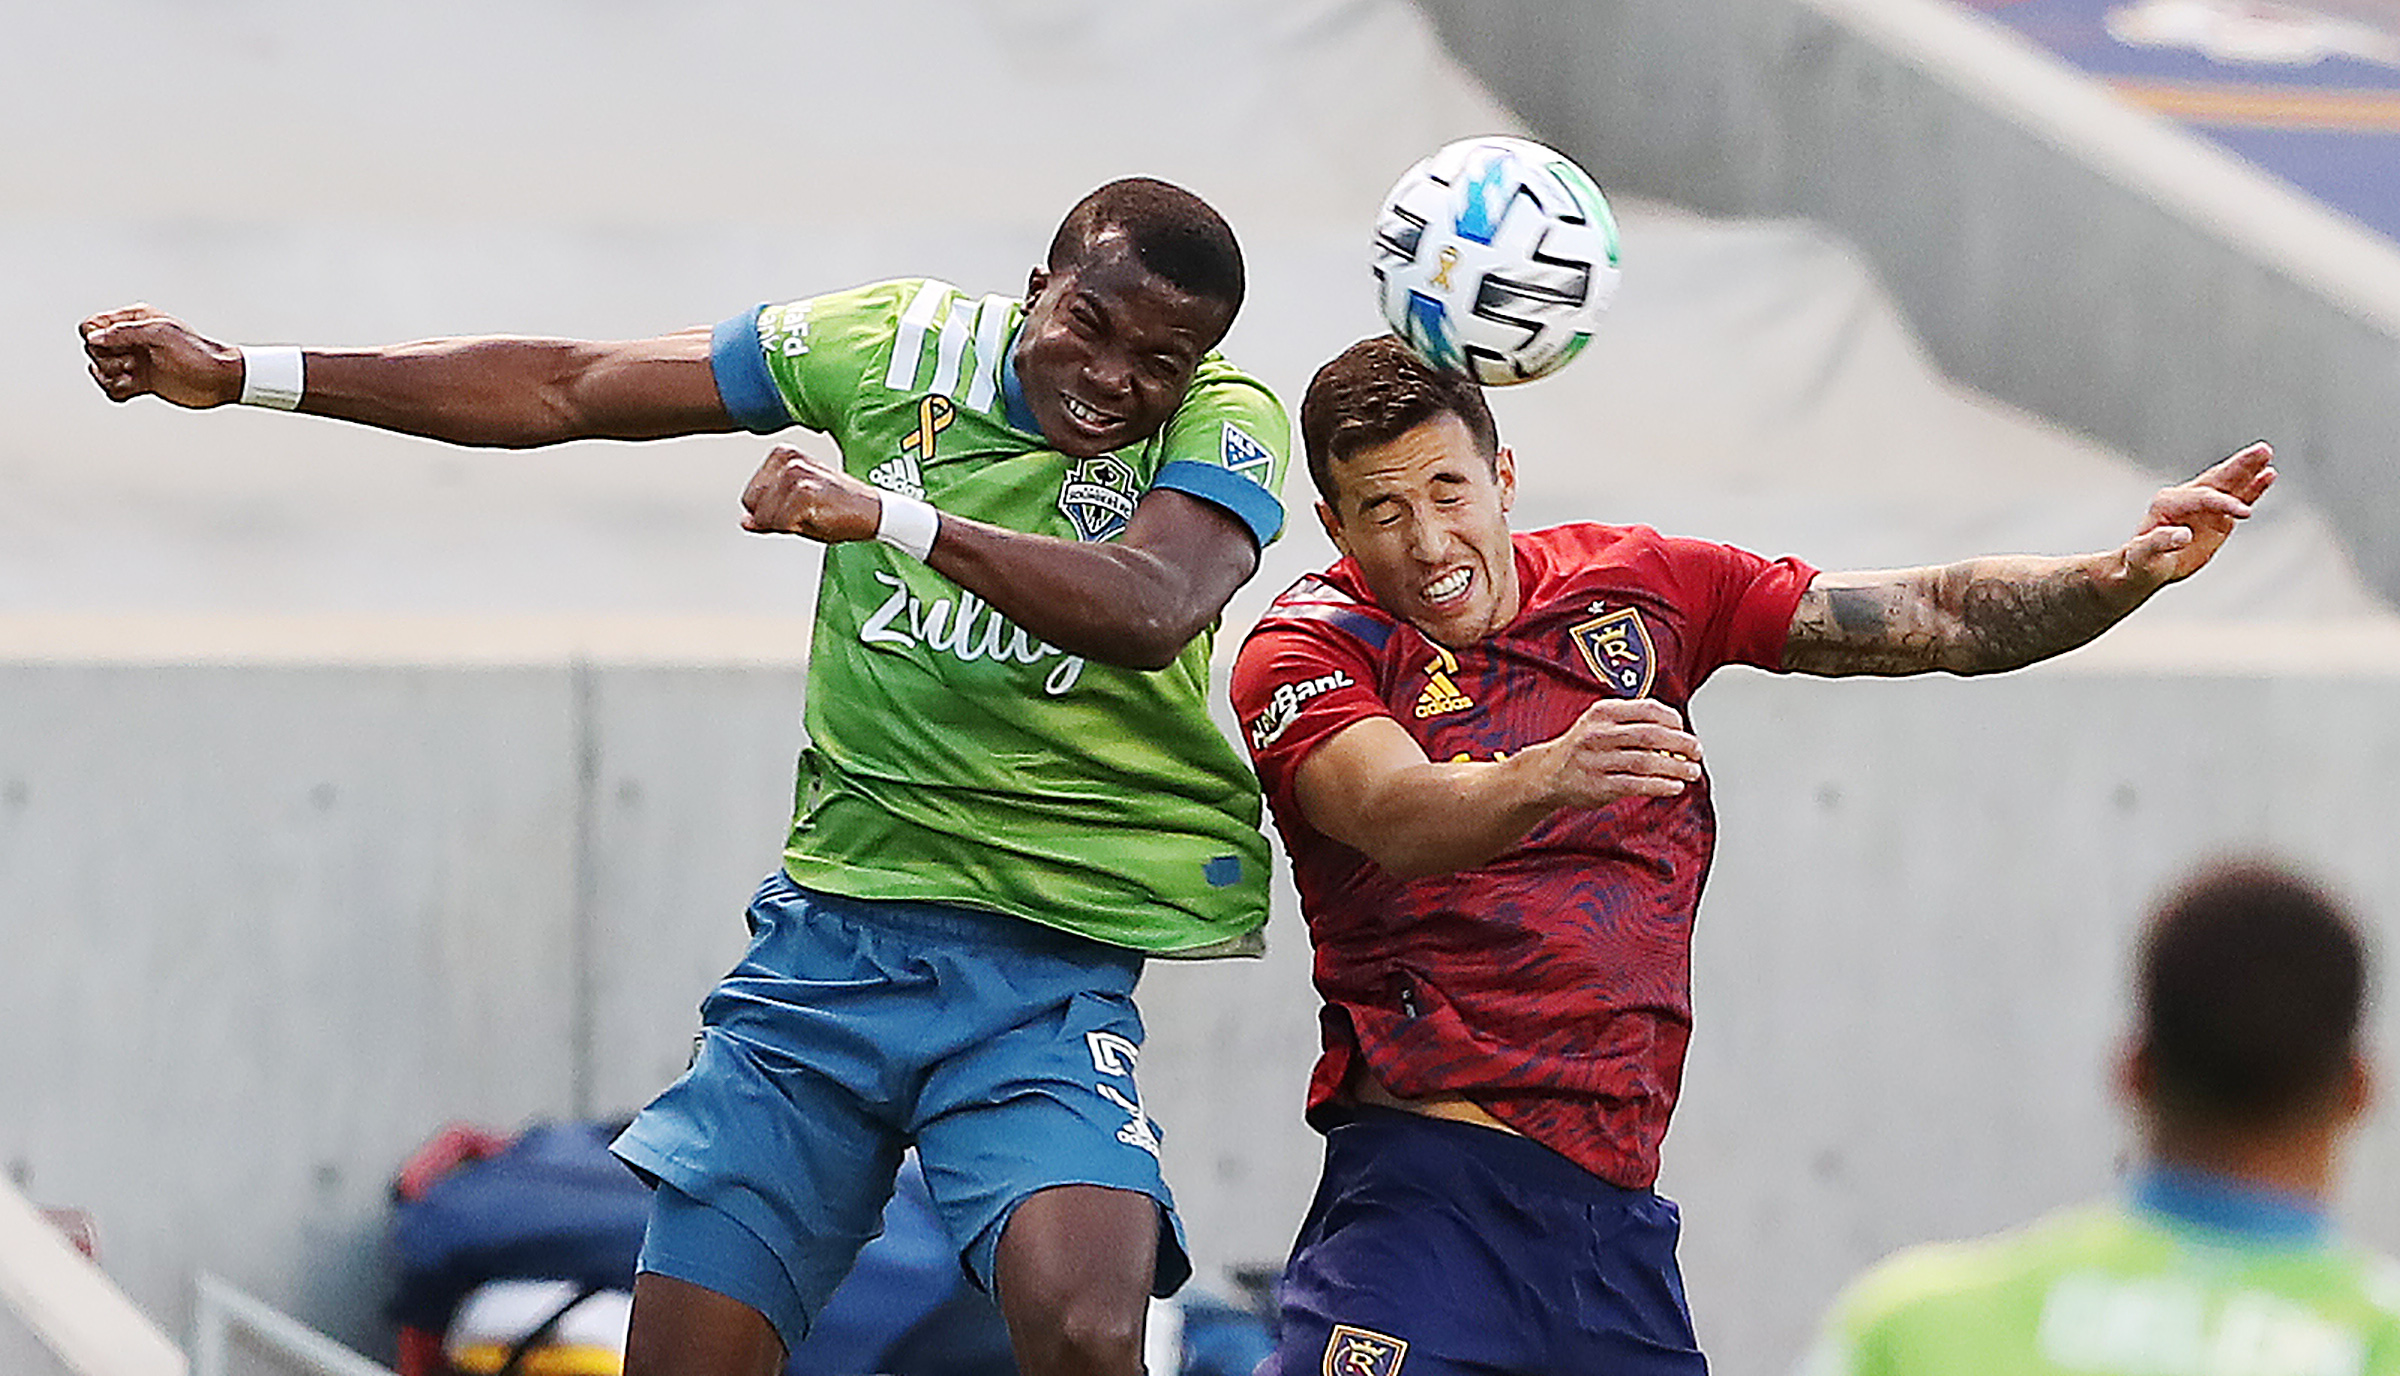 Seattle Sounders defender Nouhou Tolo (5) and Real Salt Lake defender Aaron Herrera (22) battle for the ball as Real Salt Lake and Seattle play an MSL soccer game at Rio Tinto Stadium in Sandy Utah on Wednesday, Sept. 2, 2020. The two teams battled to a 2-2 draw.